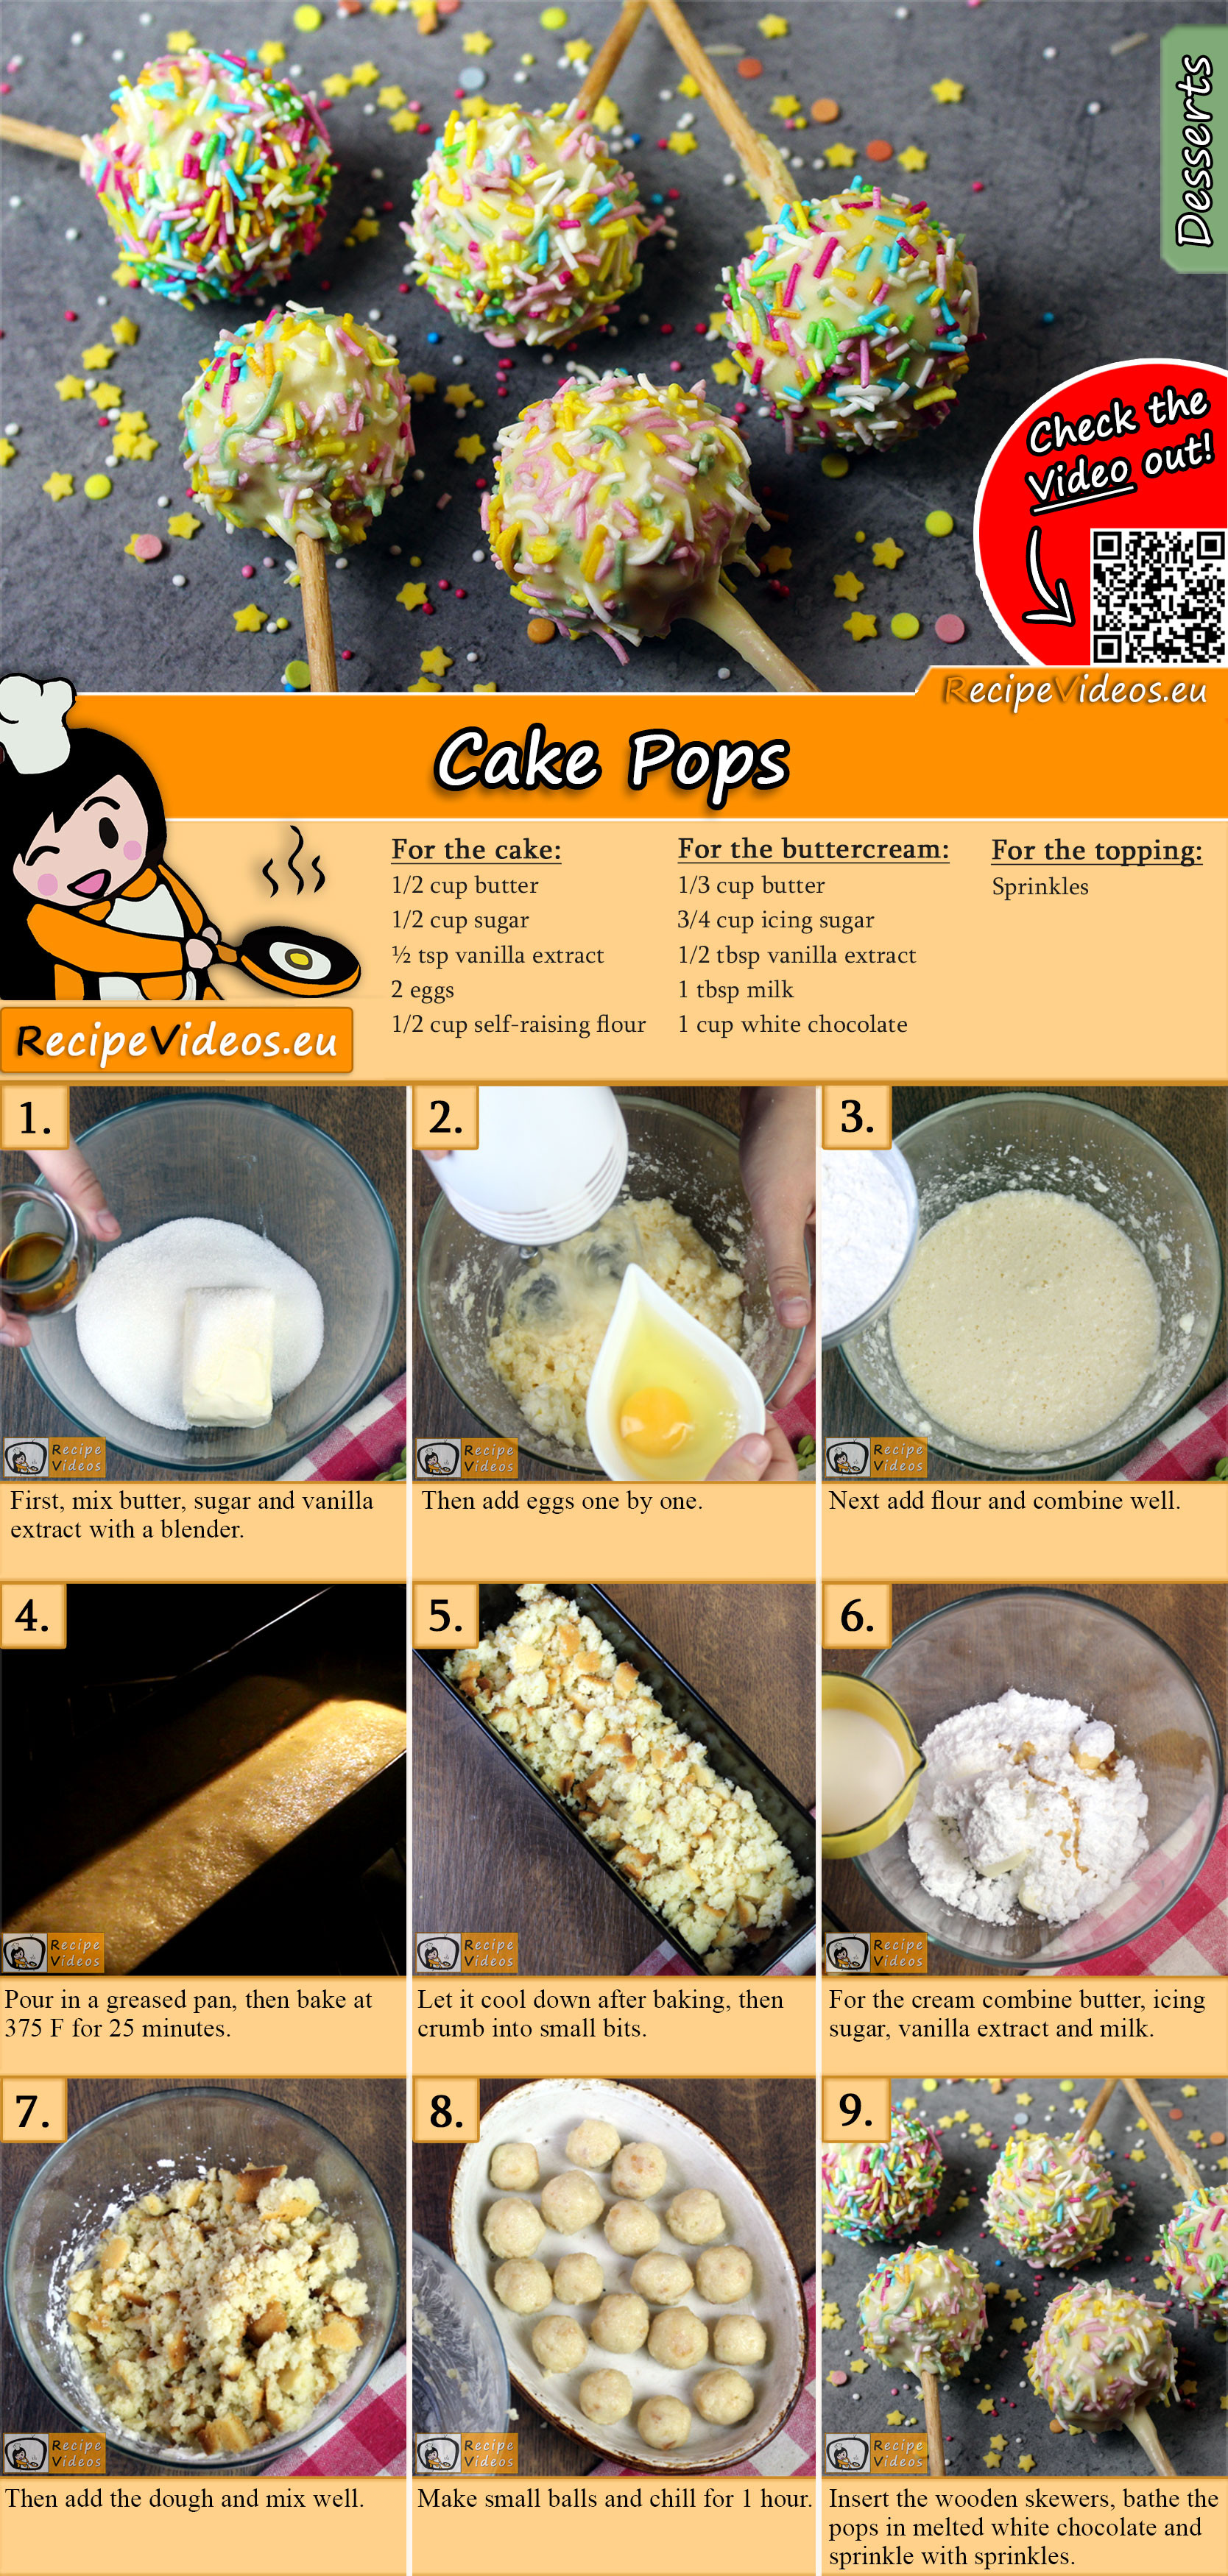 Cake Pops recipe with video